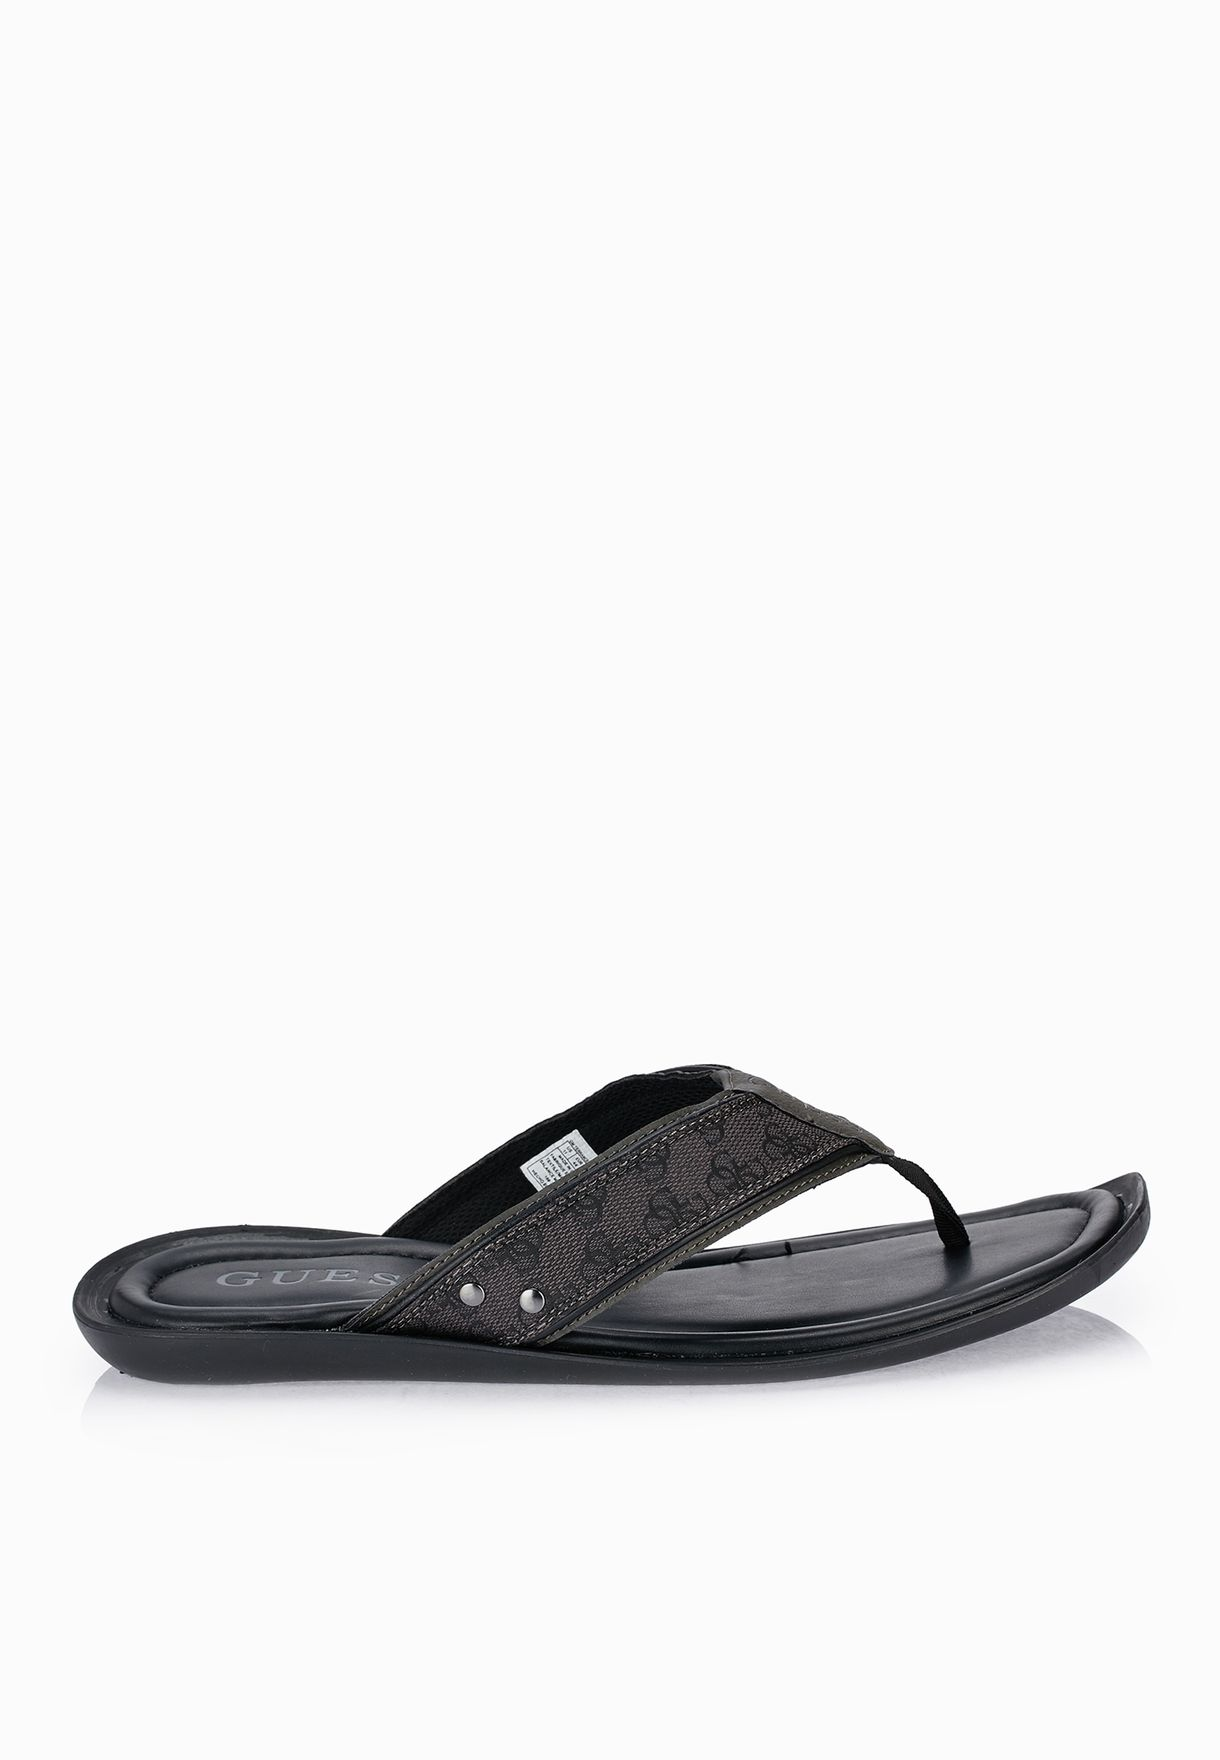 bd59ece1dc04 Shop Guess black Terrance Flip Flops GMTERRANCE for Men in UAE ...